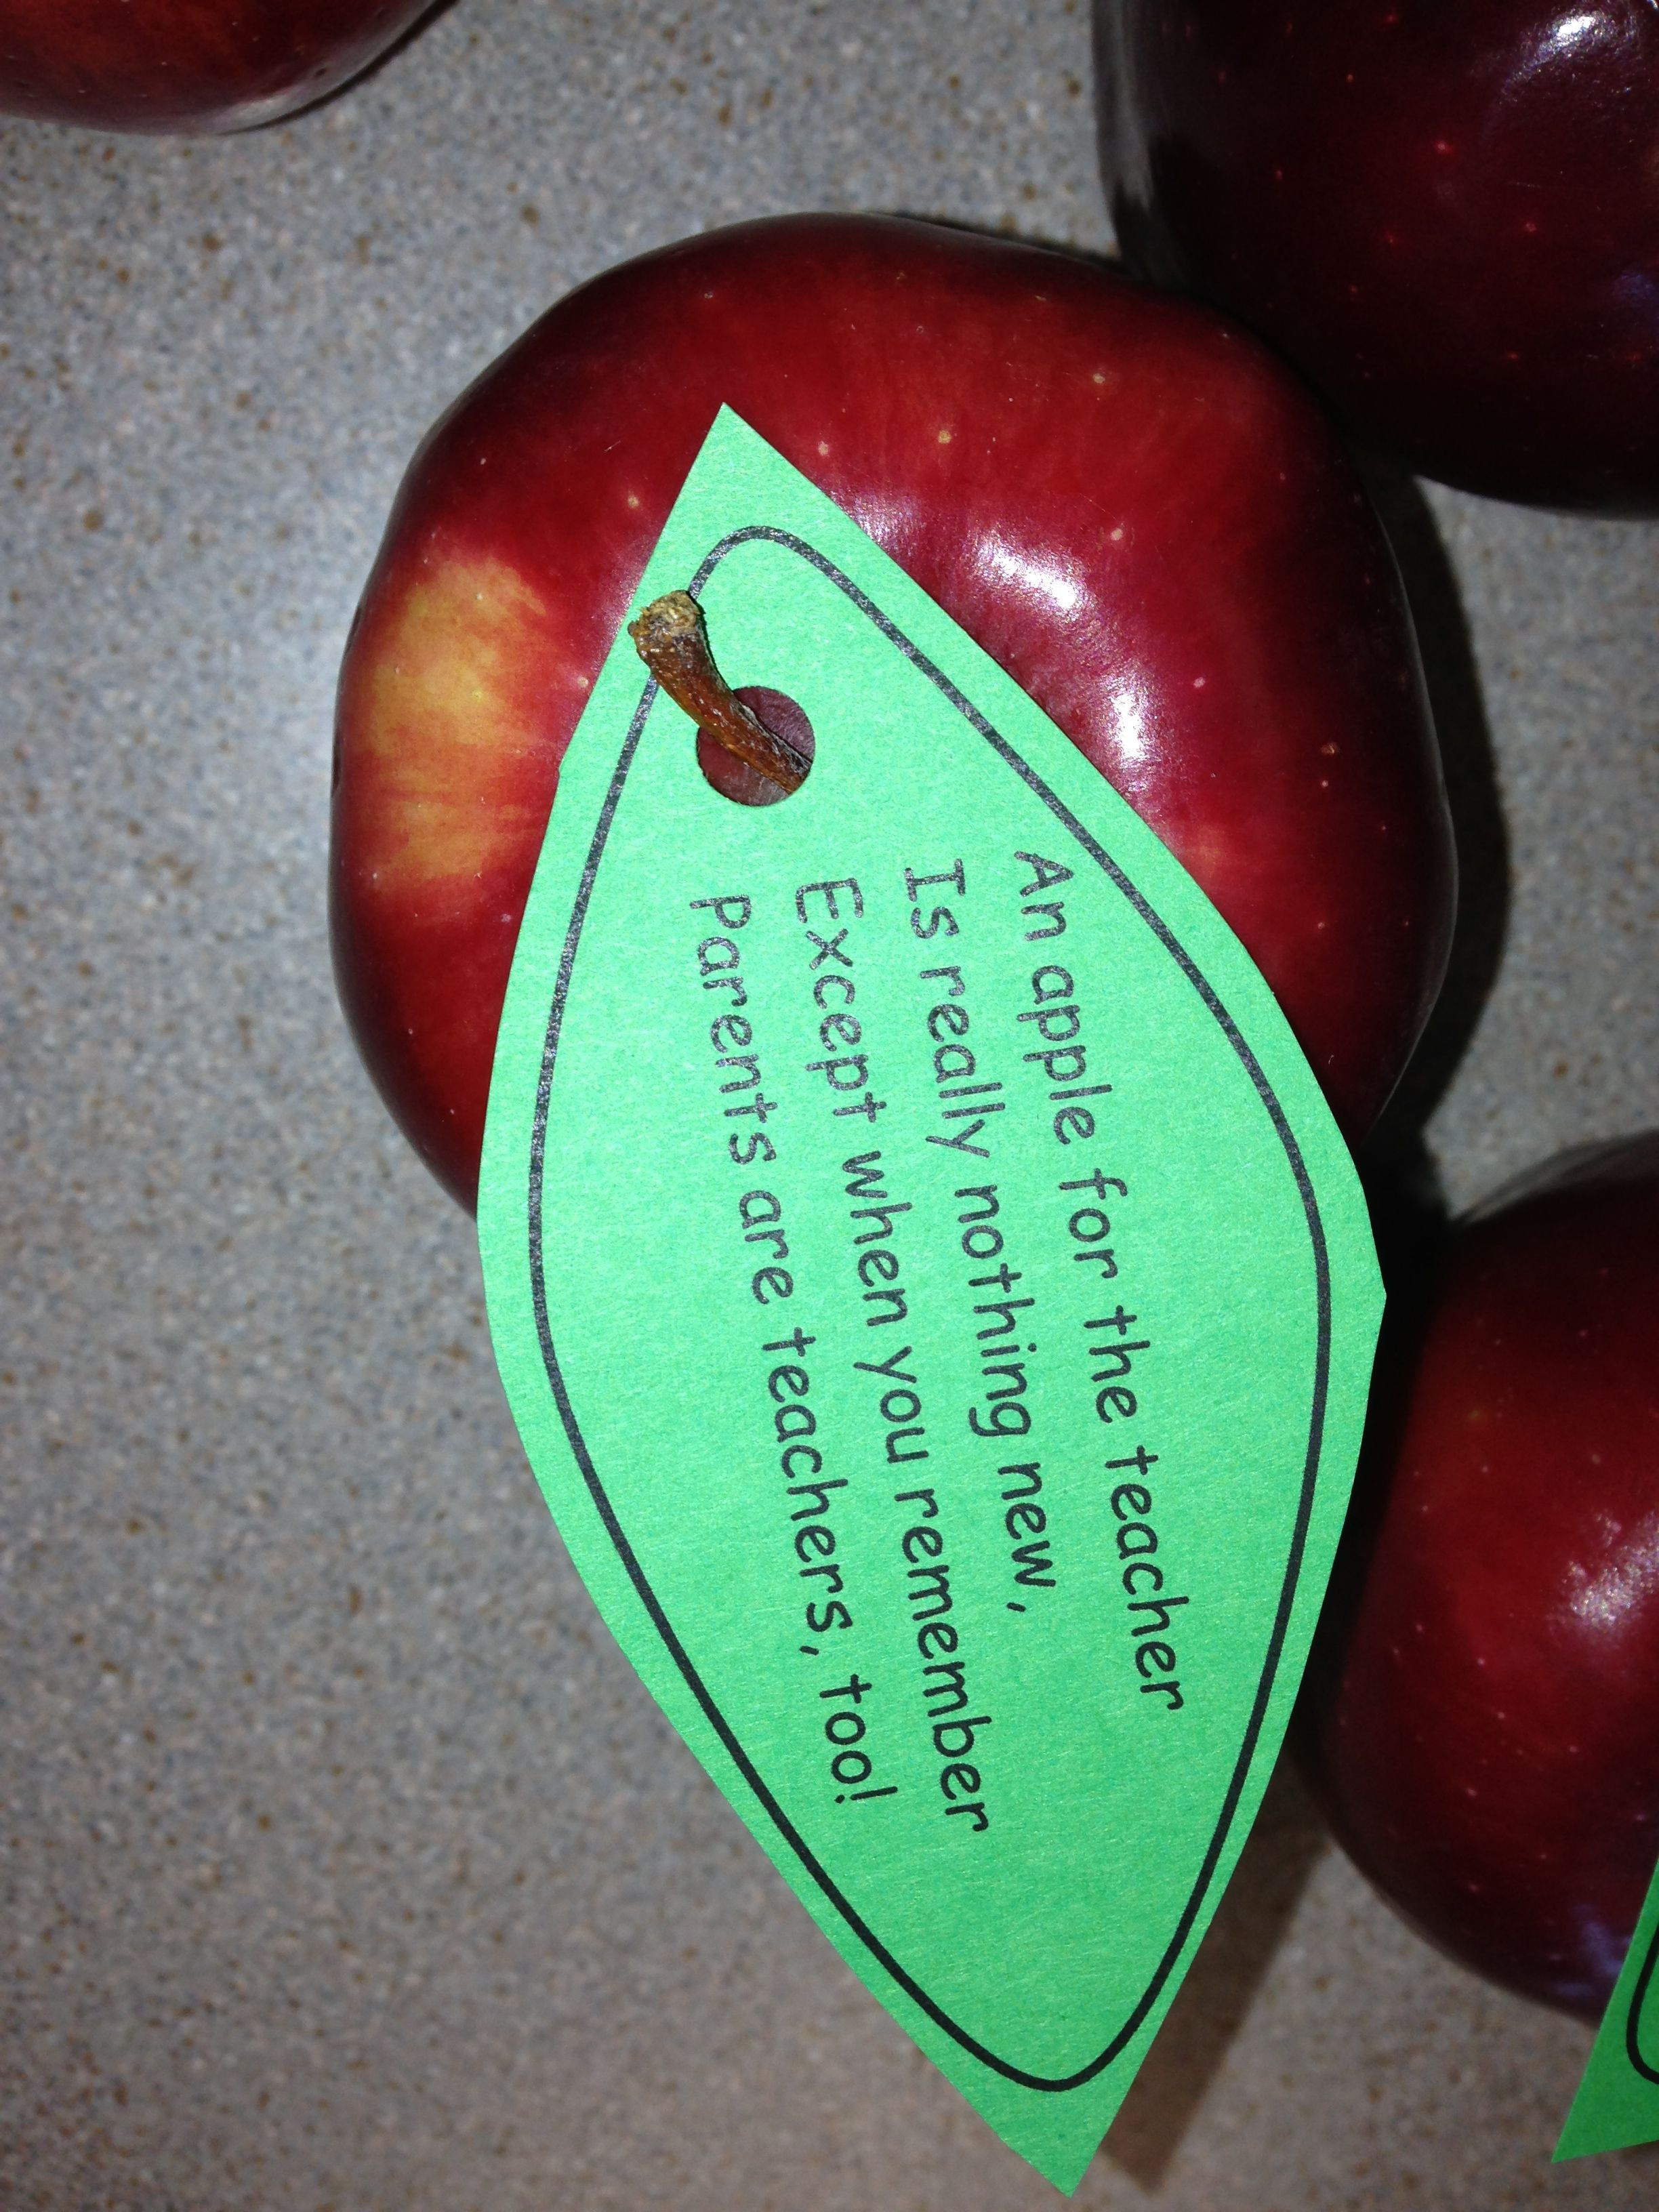 Cute Little Poem With An Apple For The Parents An Apple For The Teacher Is Really Nothing New